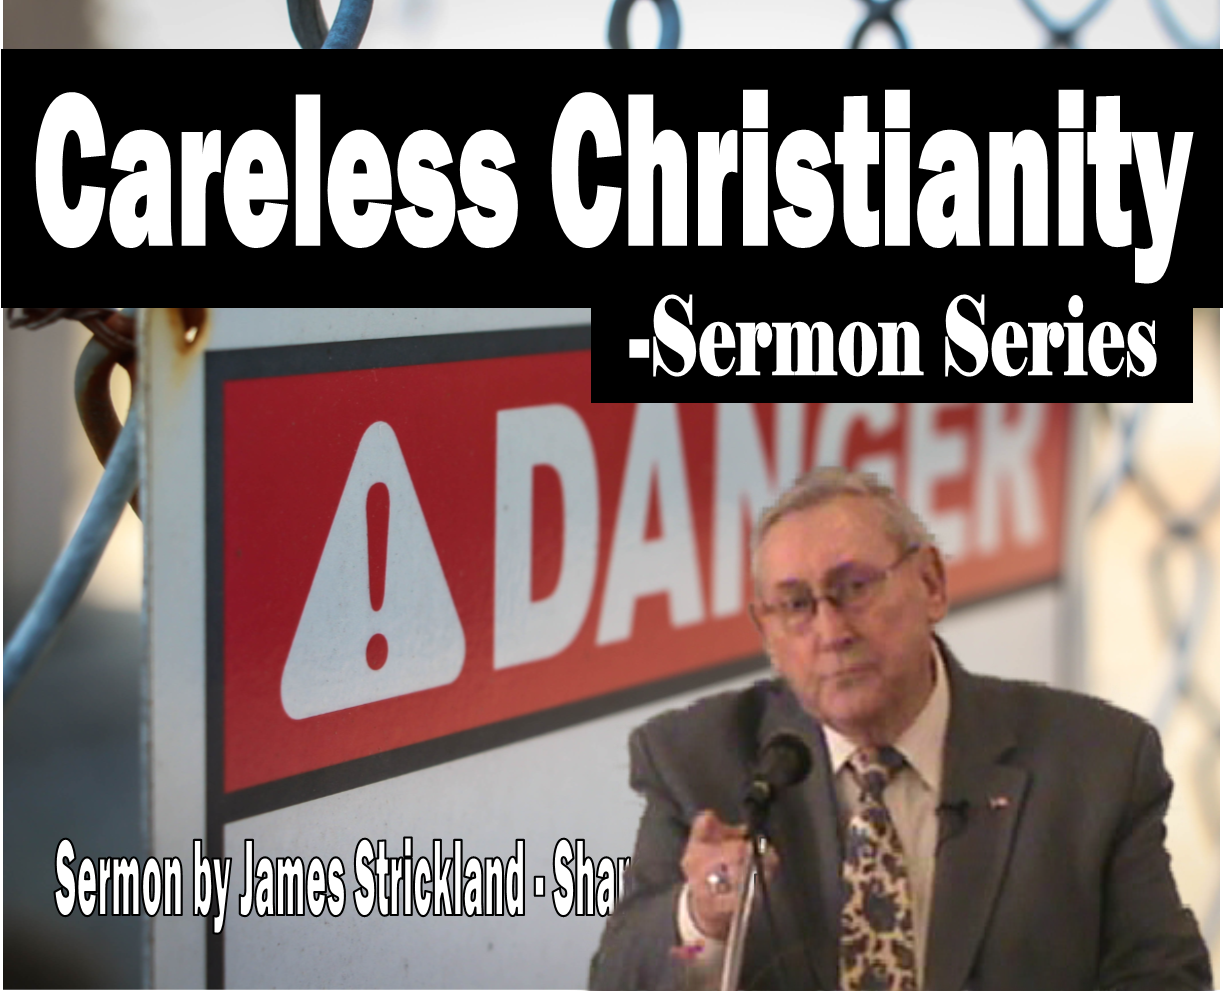 Sermon Series Careless Christianity by James Strickland